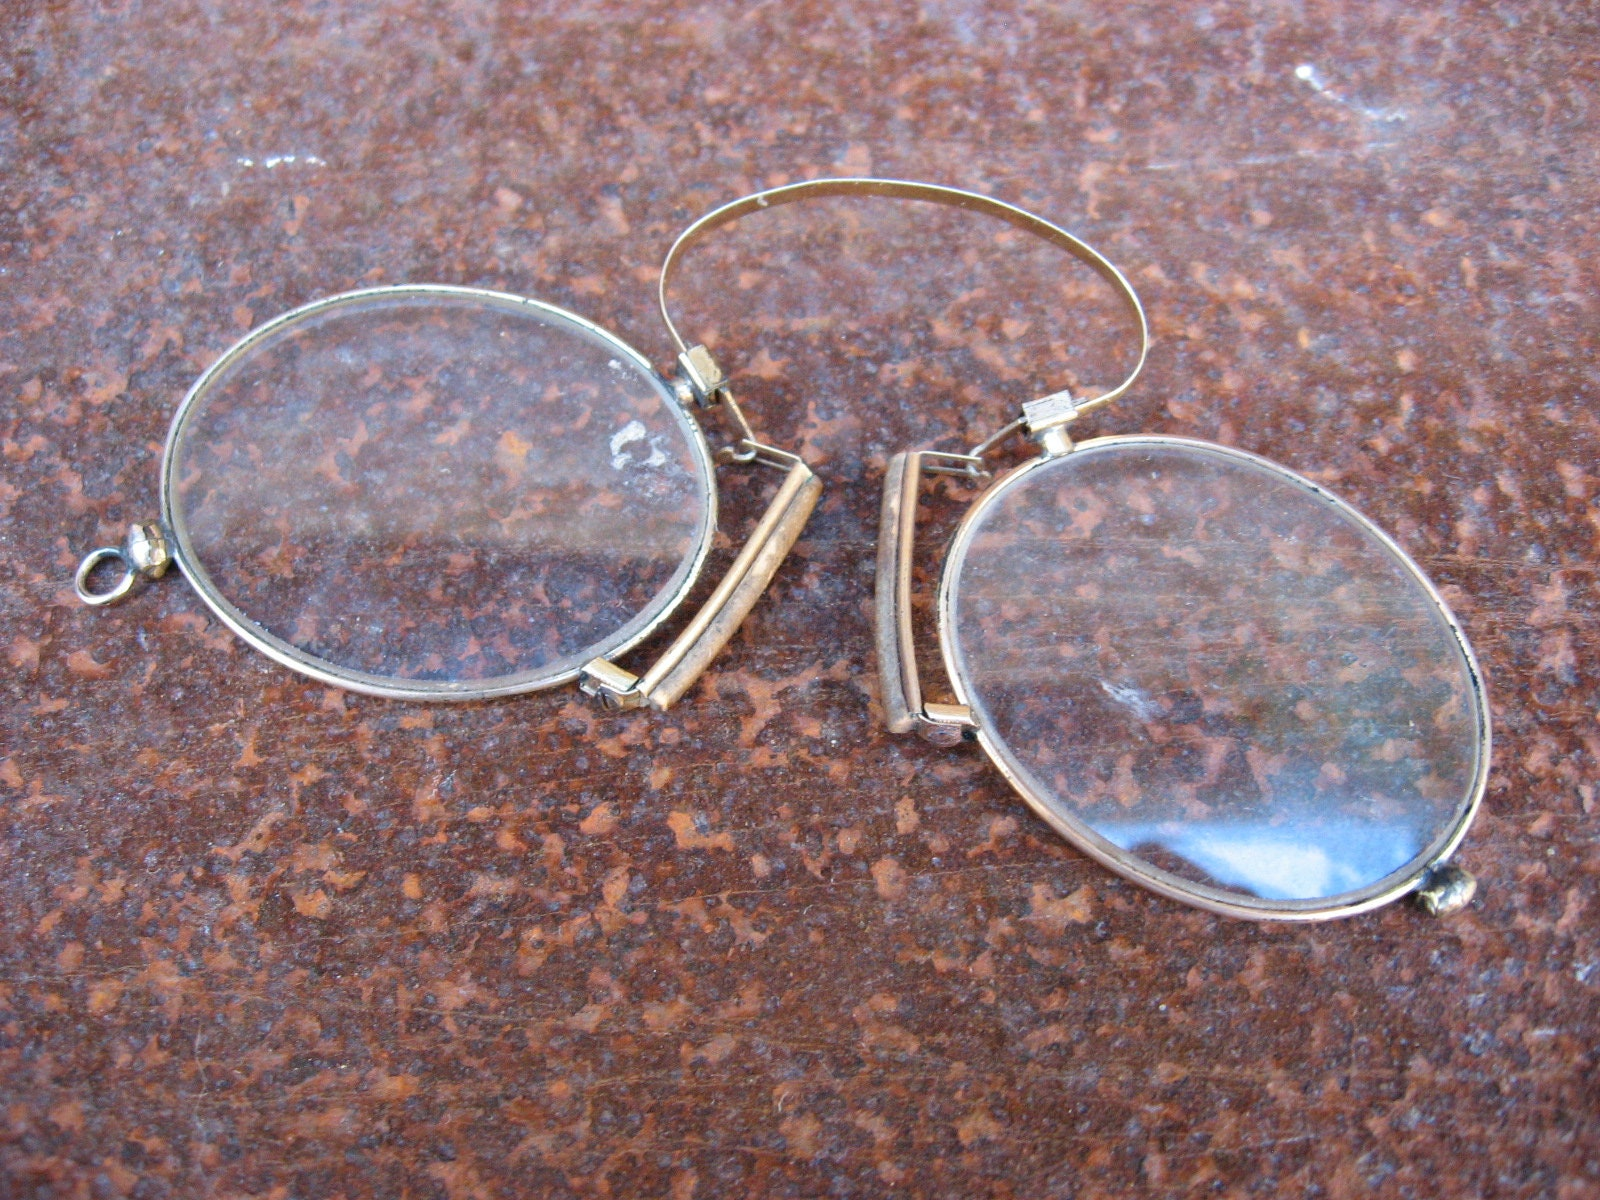 Antique FRENCH READING GLASSES with original case. Old